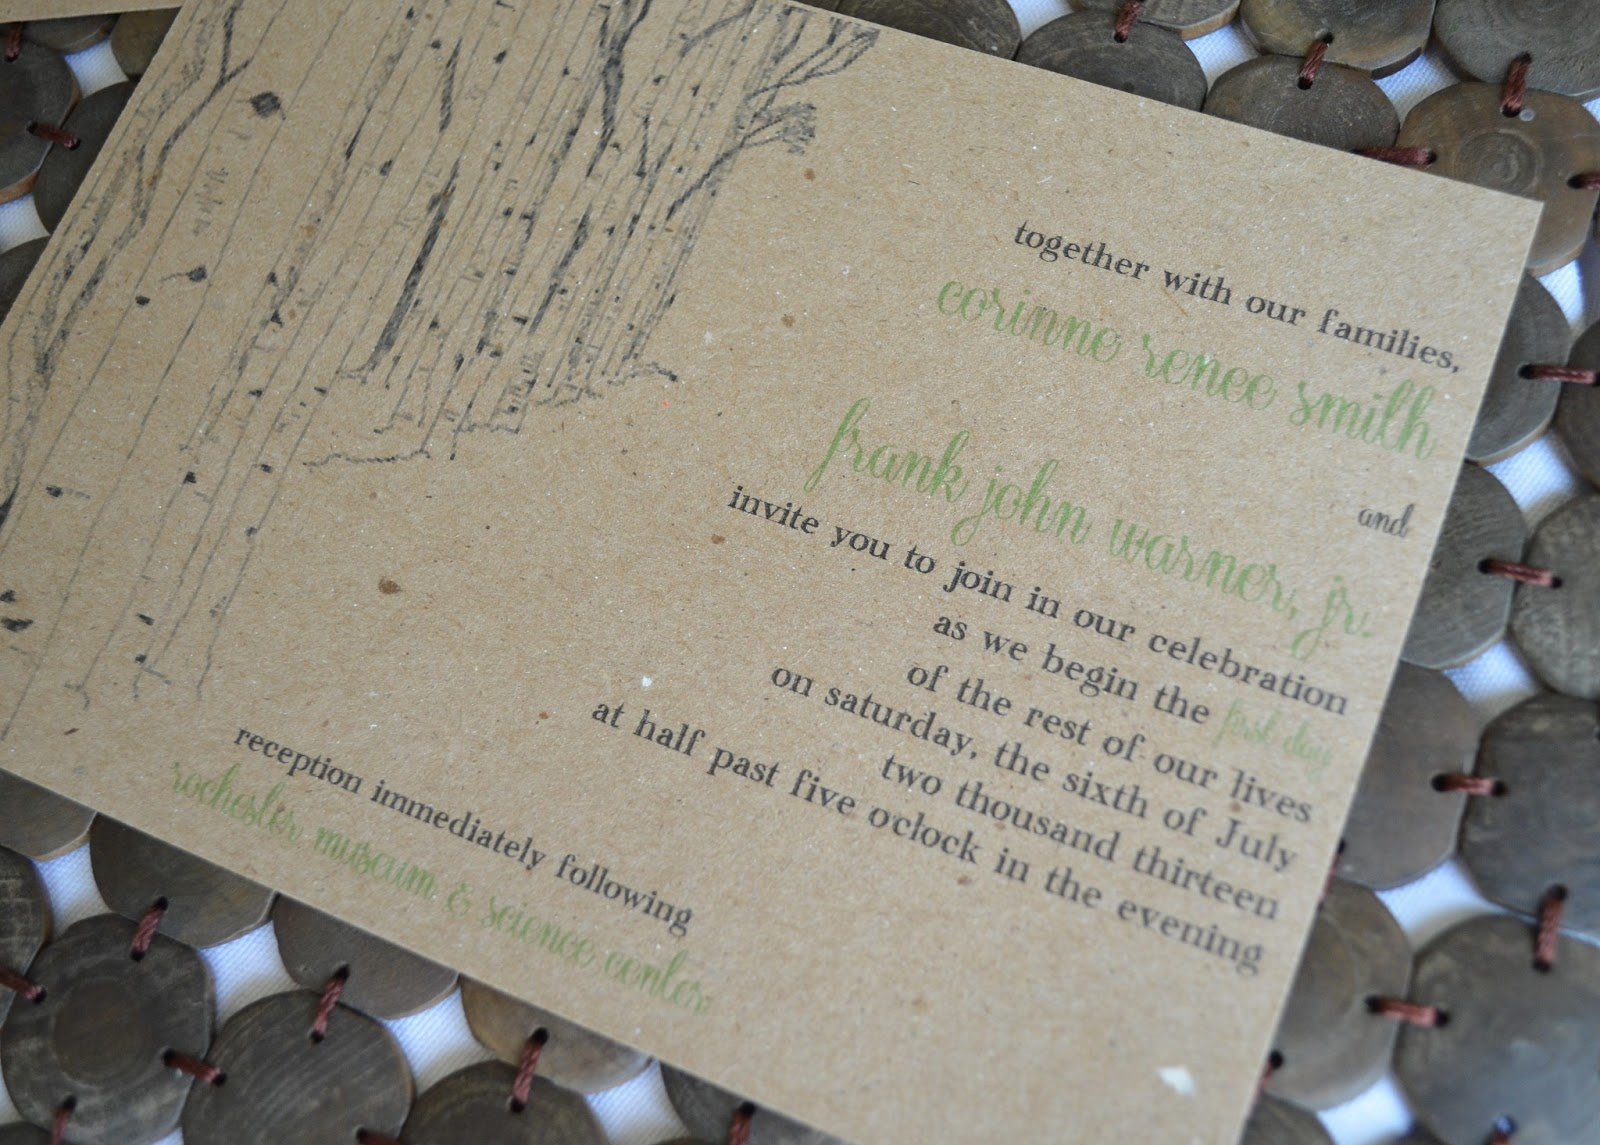 How To Address Wedding Invitations Without Inner Envelope for awesome invitation ideas